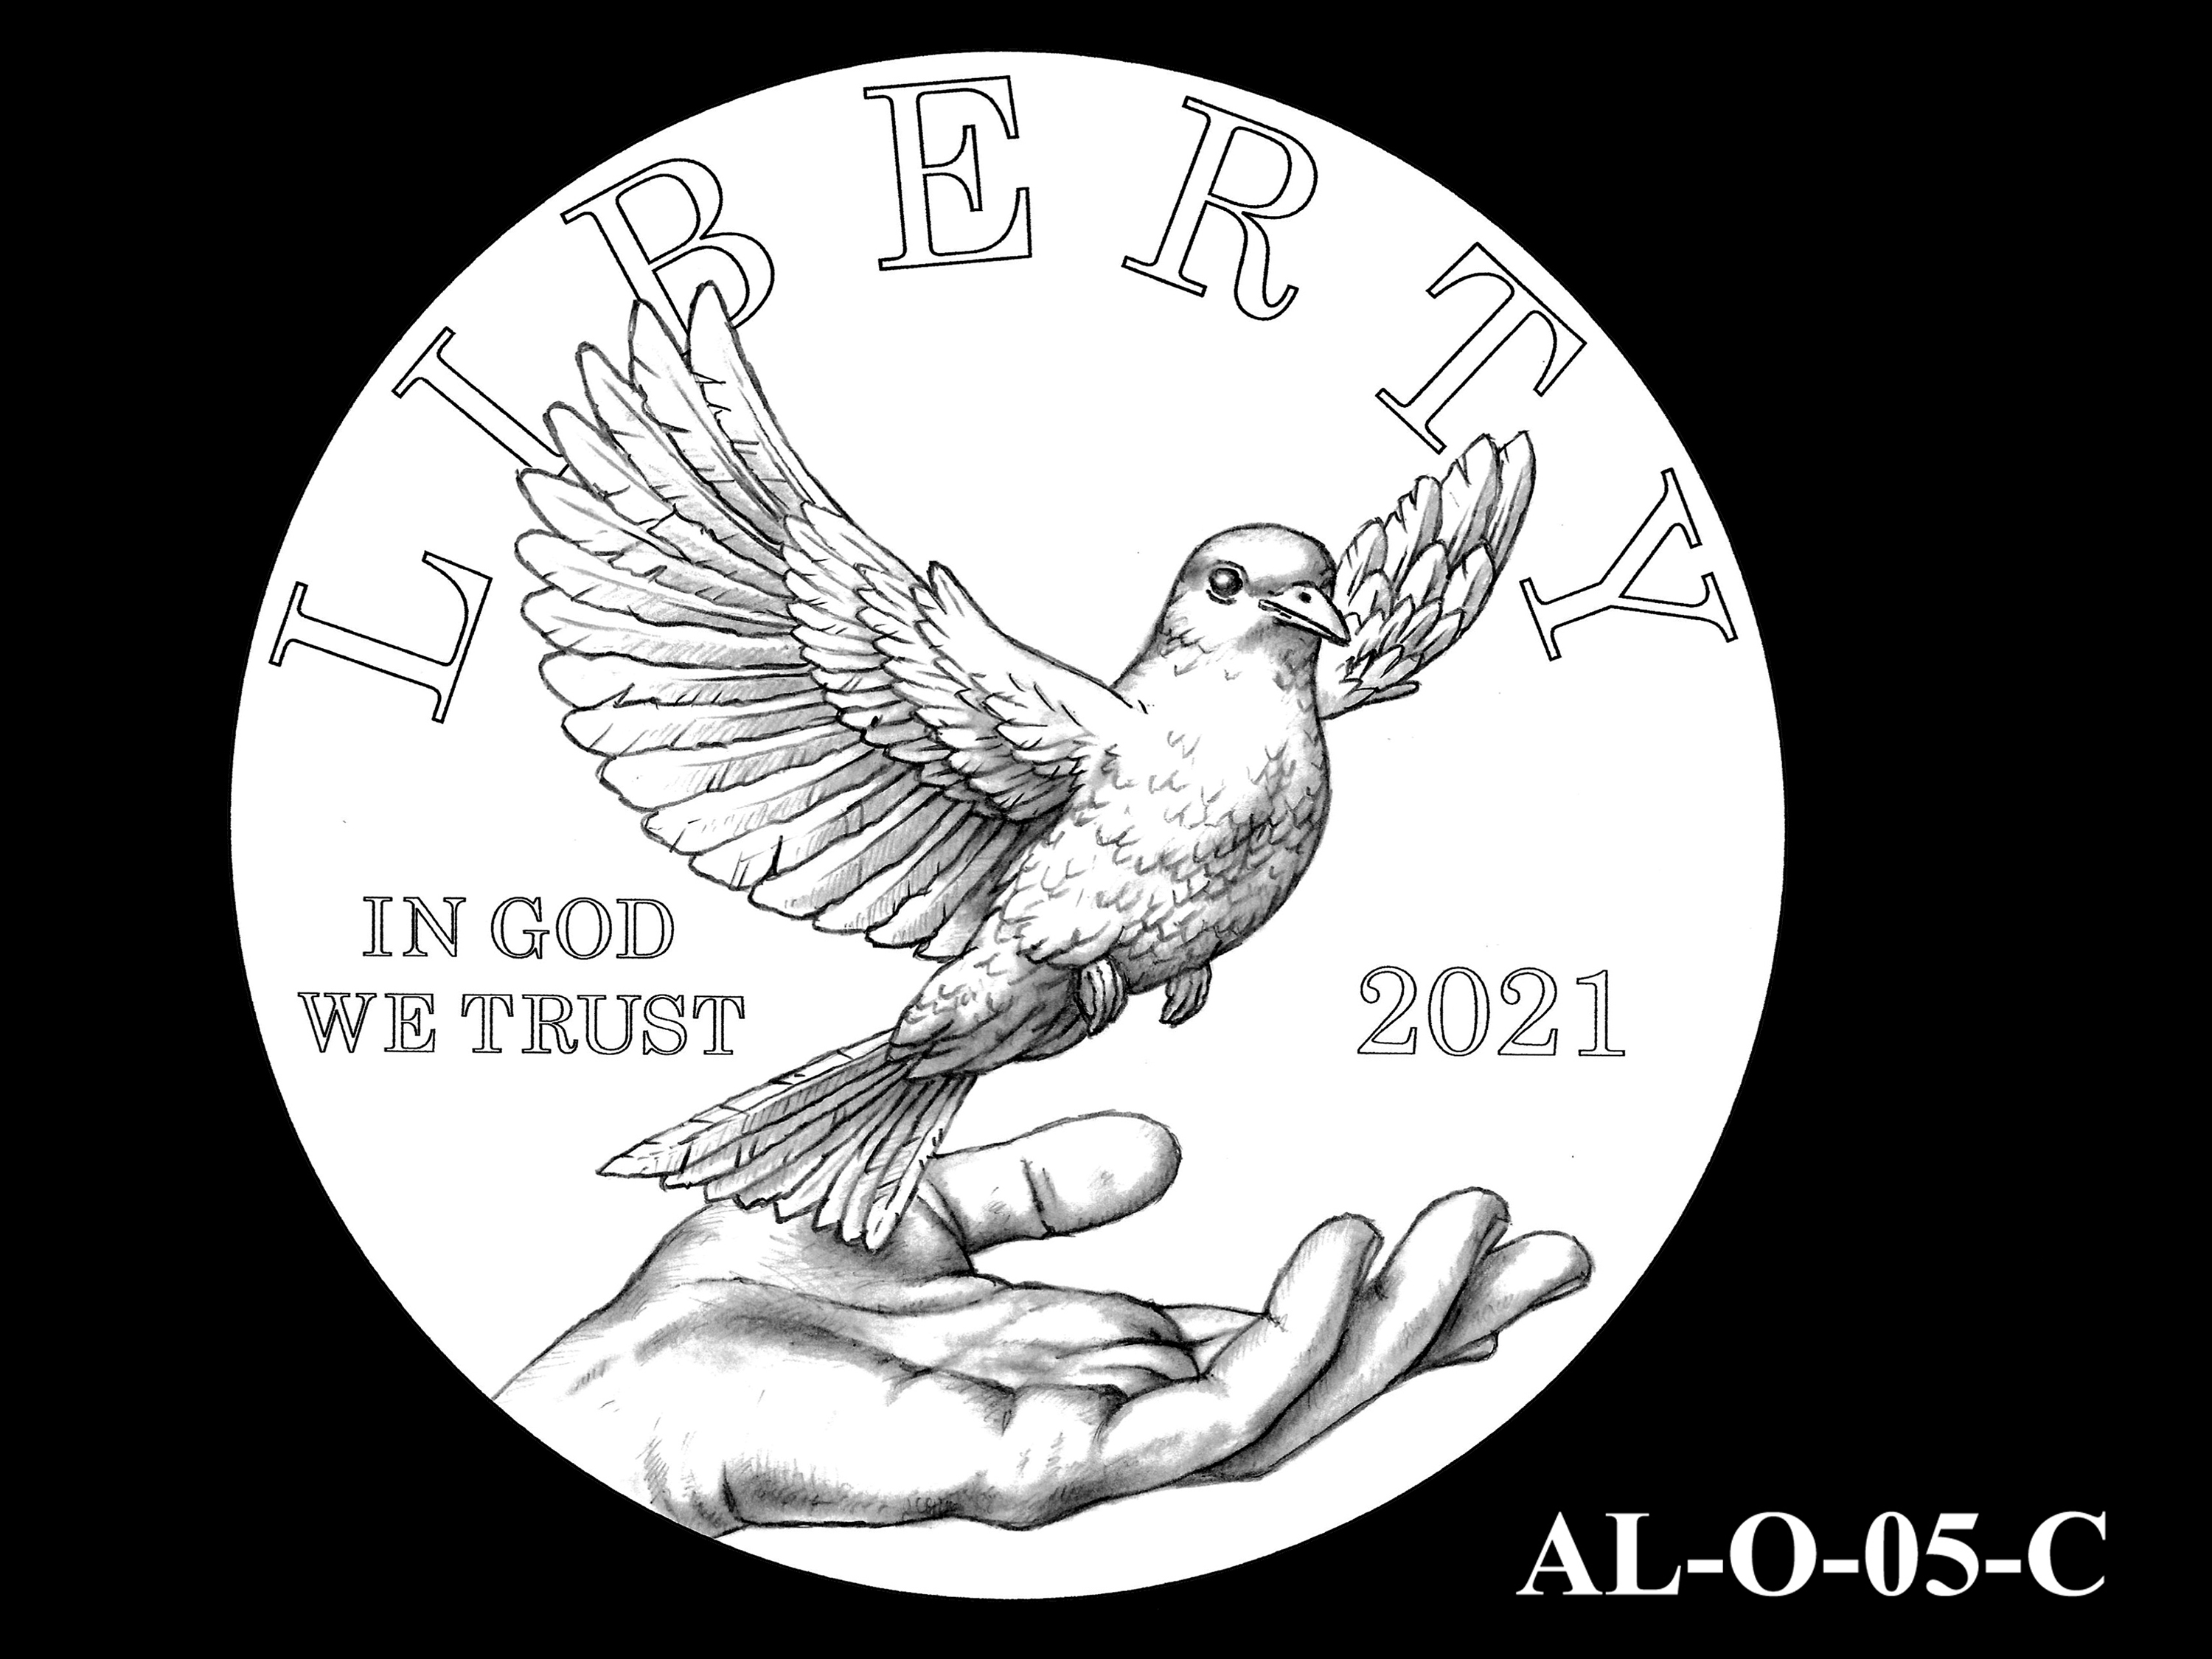 AL-O-05-C -- 2021 American Liberty Gold Coin and Silver Medal Program - Obverse